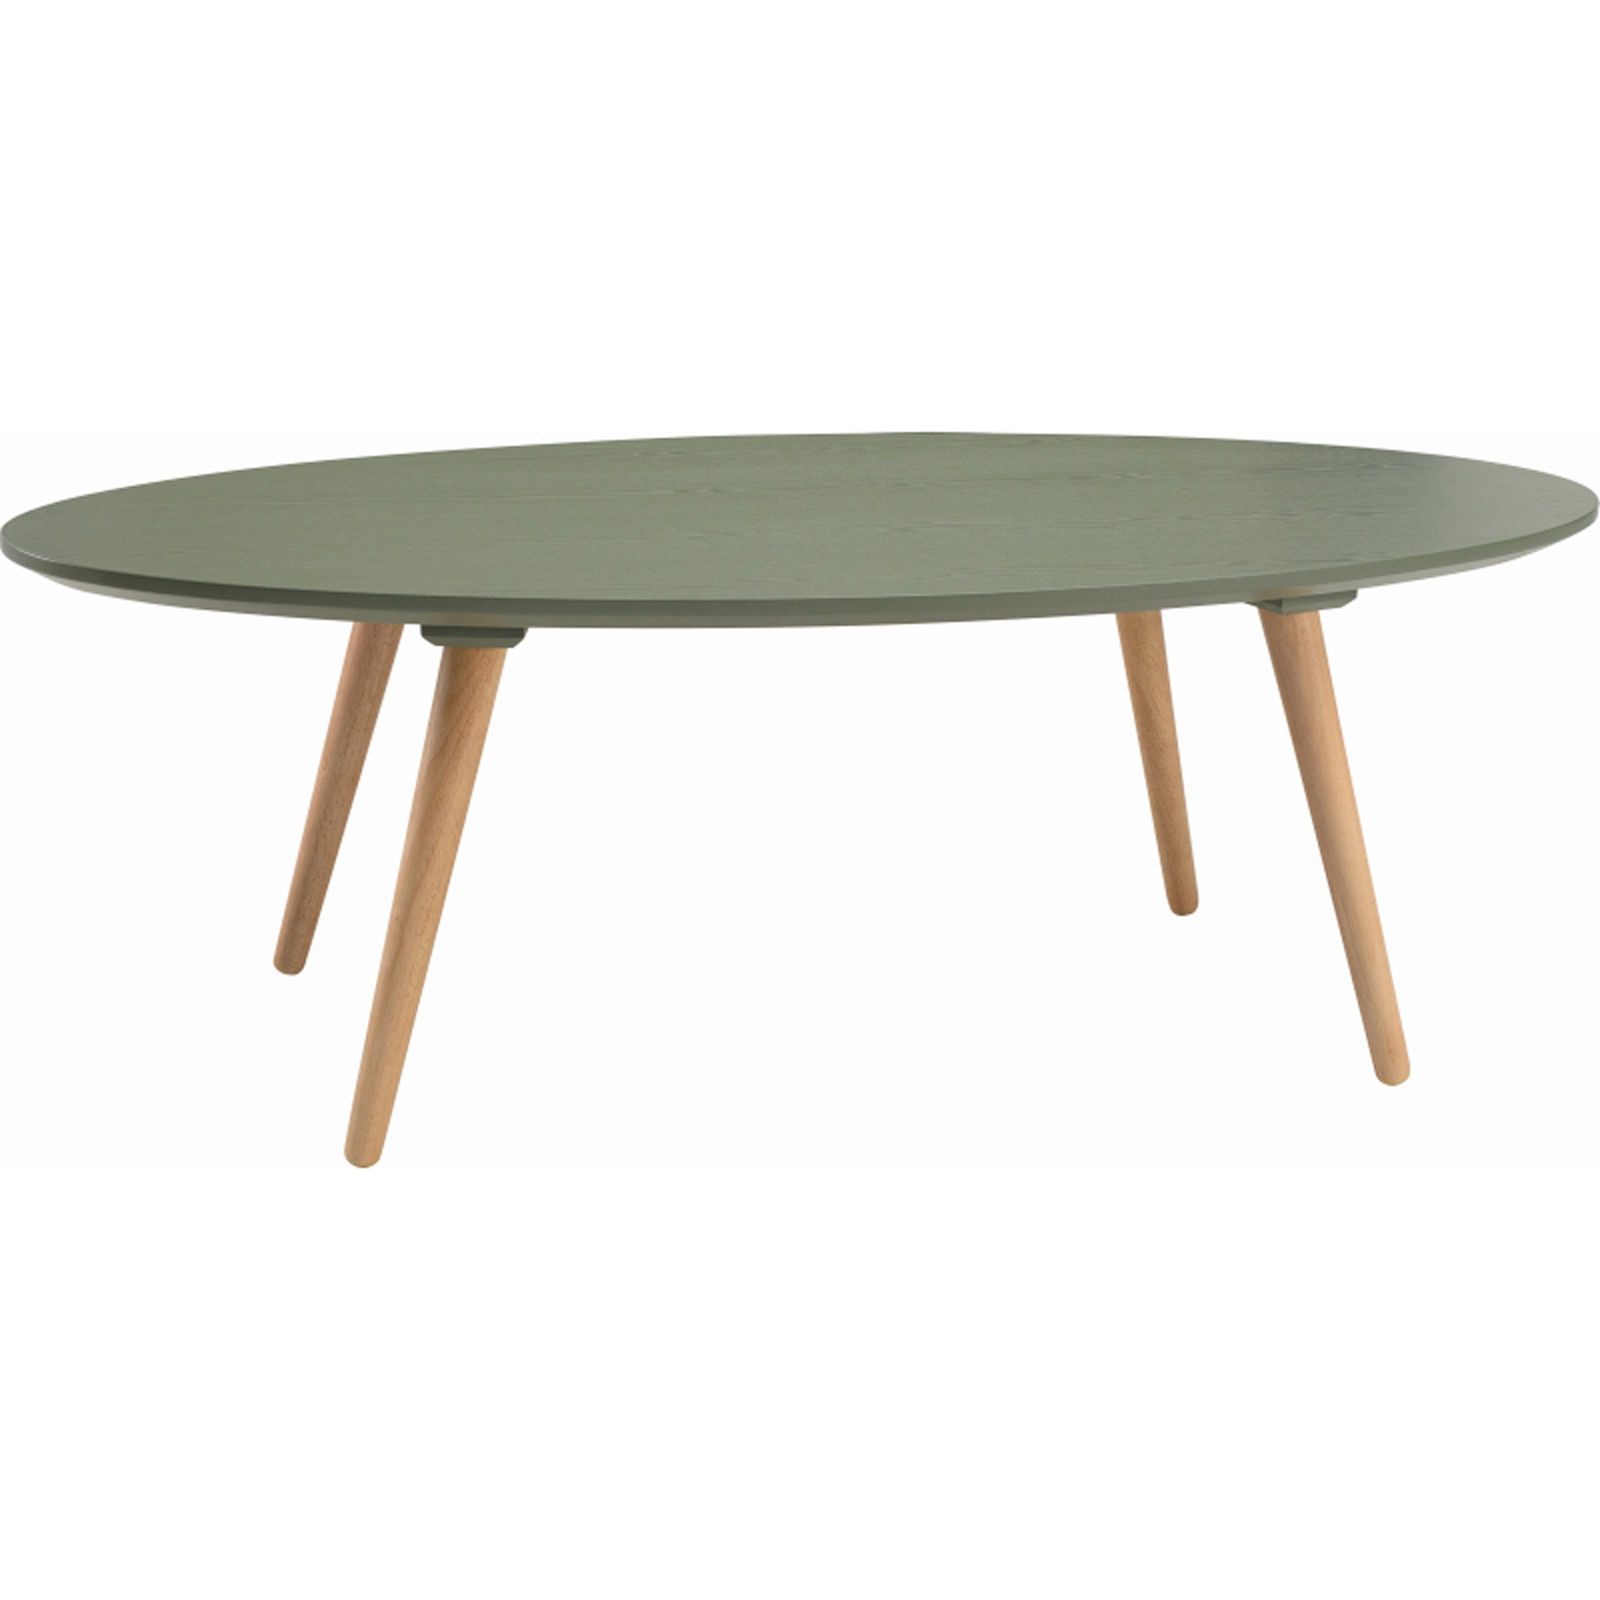 Details about carsyn oval coffee table in pickle green